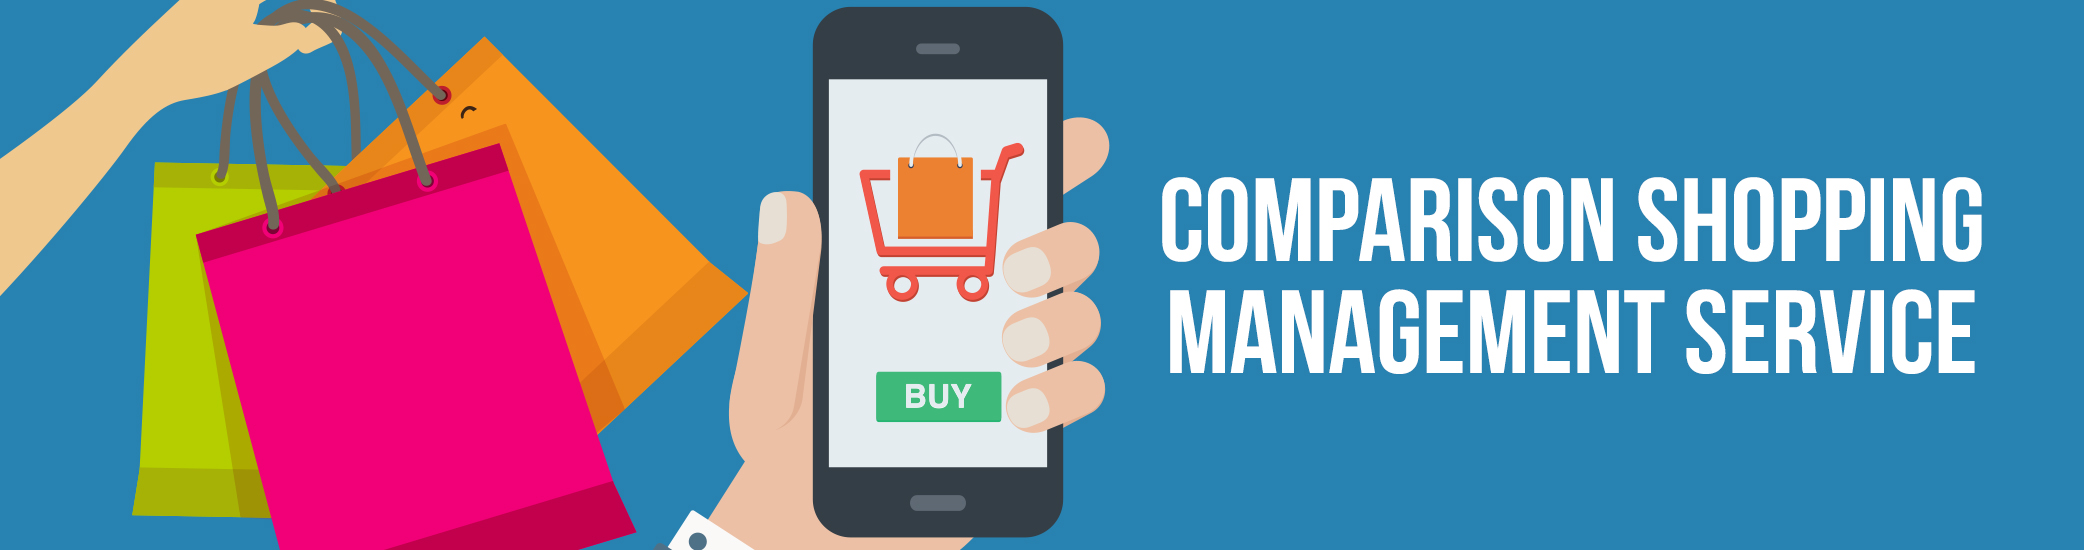 Comparison Shopping Management Service